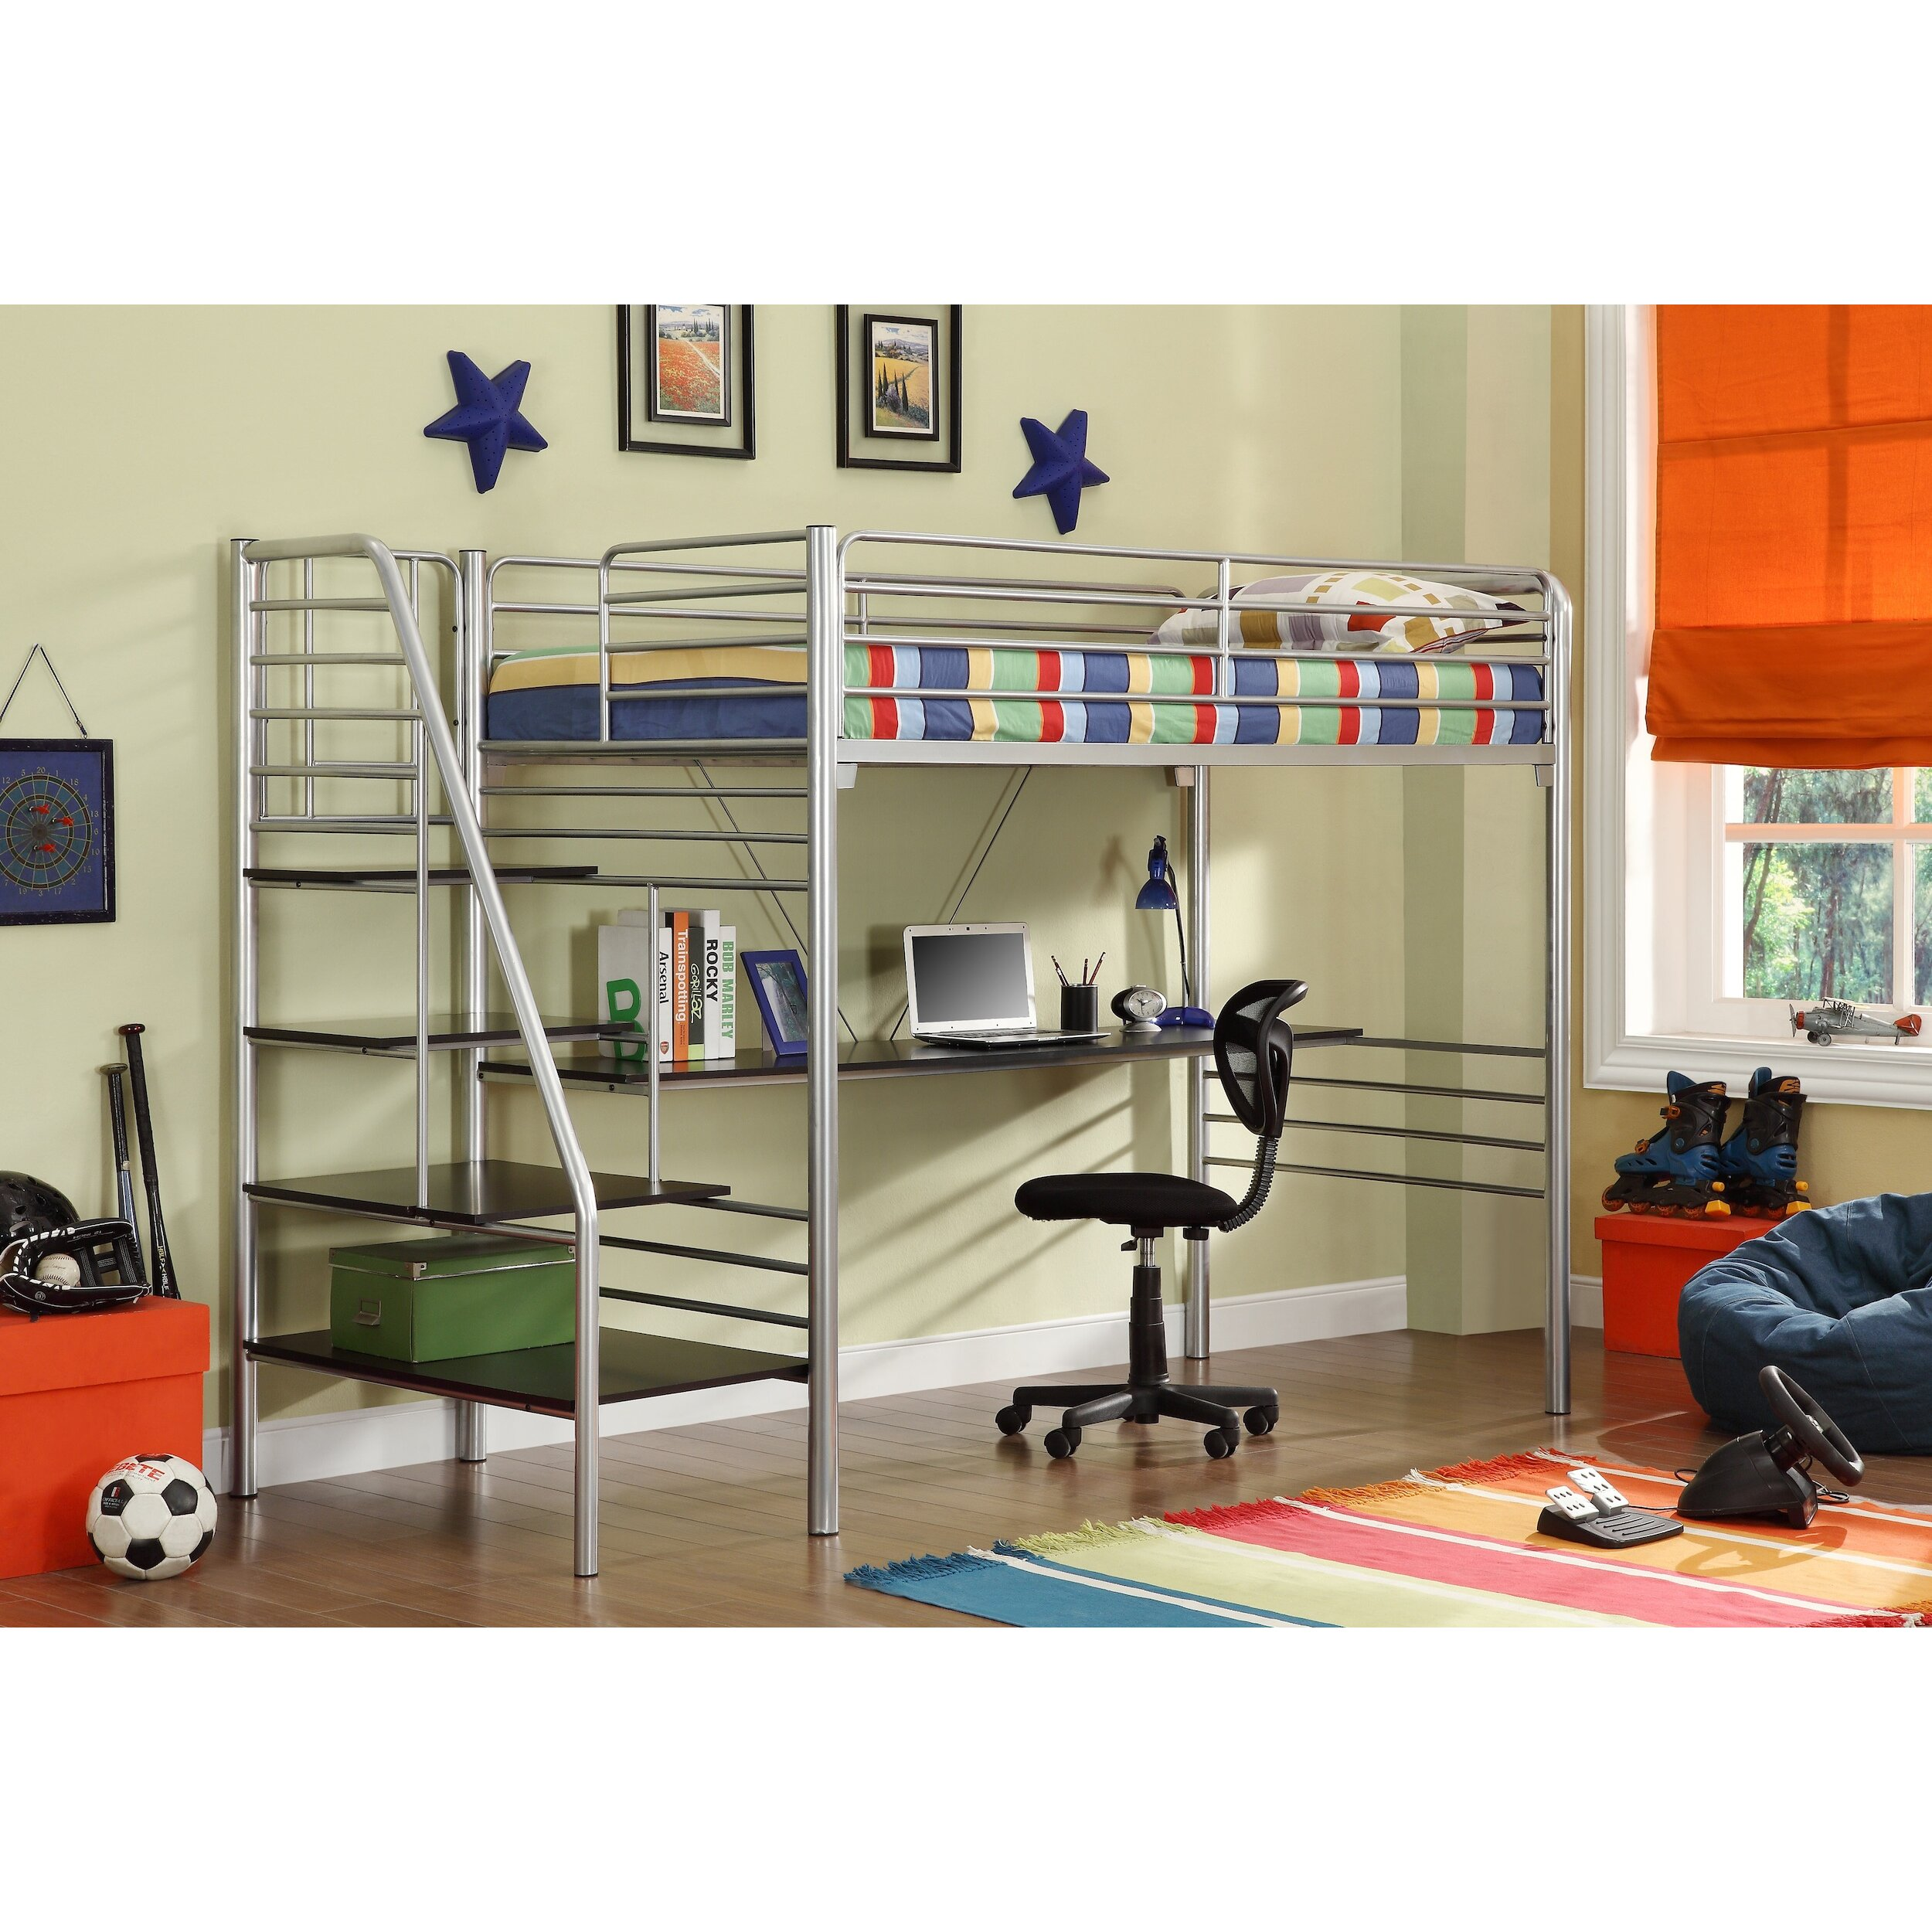 Bunk beds for kids with stairs - Donco Kids Twin Loft Bed